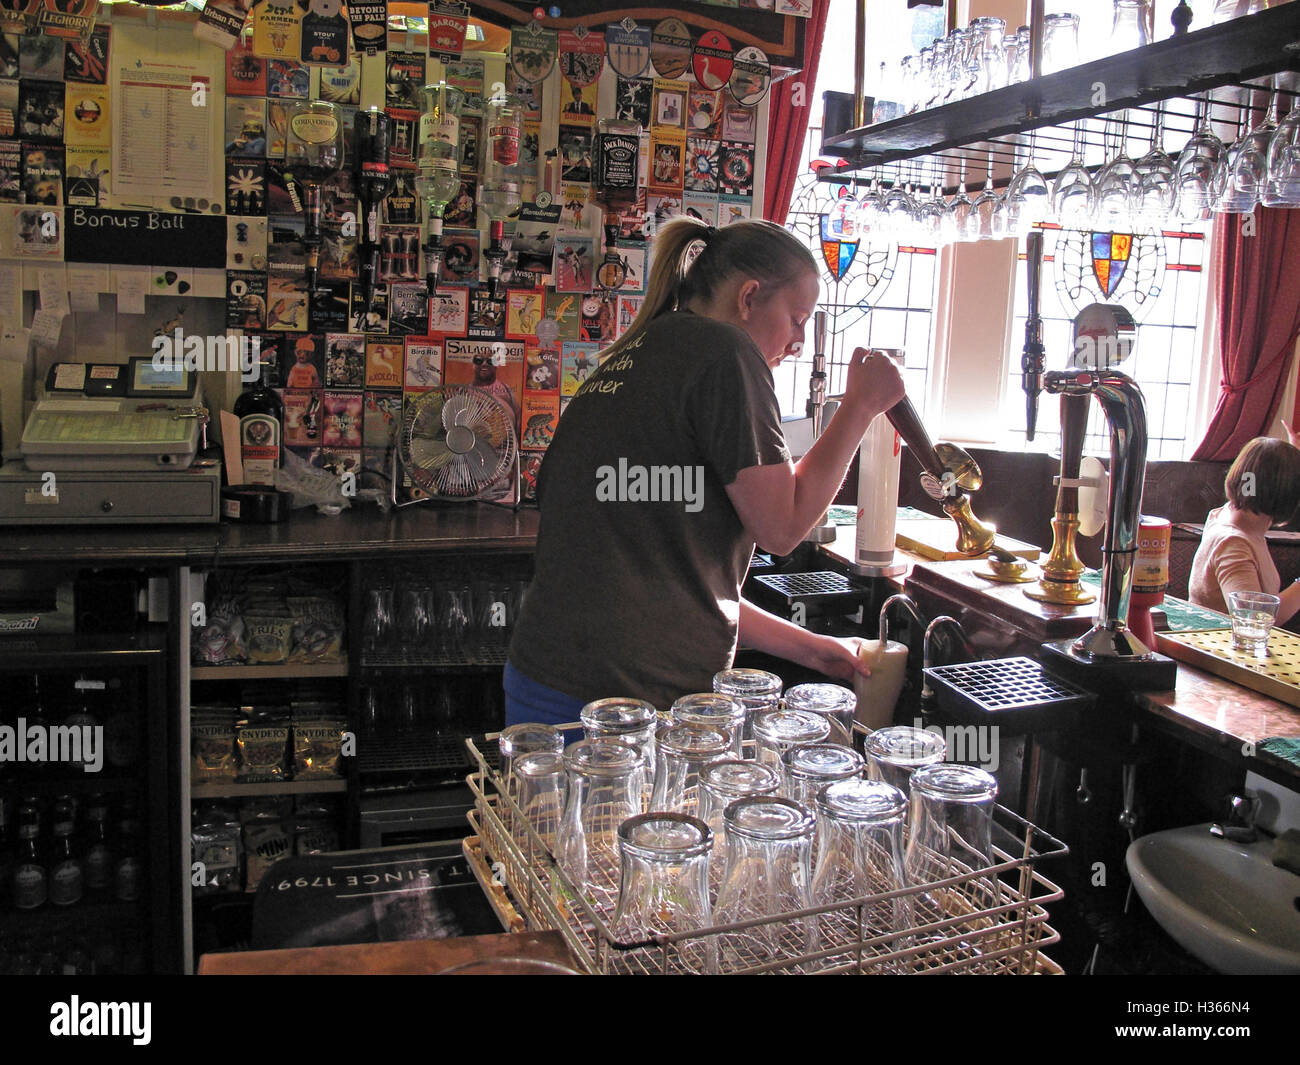 Pulling a handpull pint in a Yorkshire pub,with empty glasses, England, UK Stock Photo